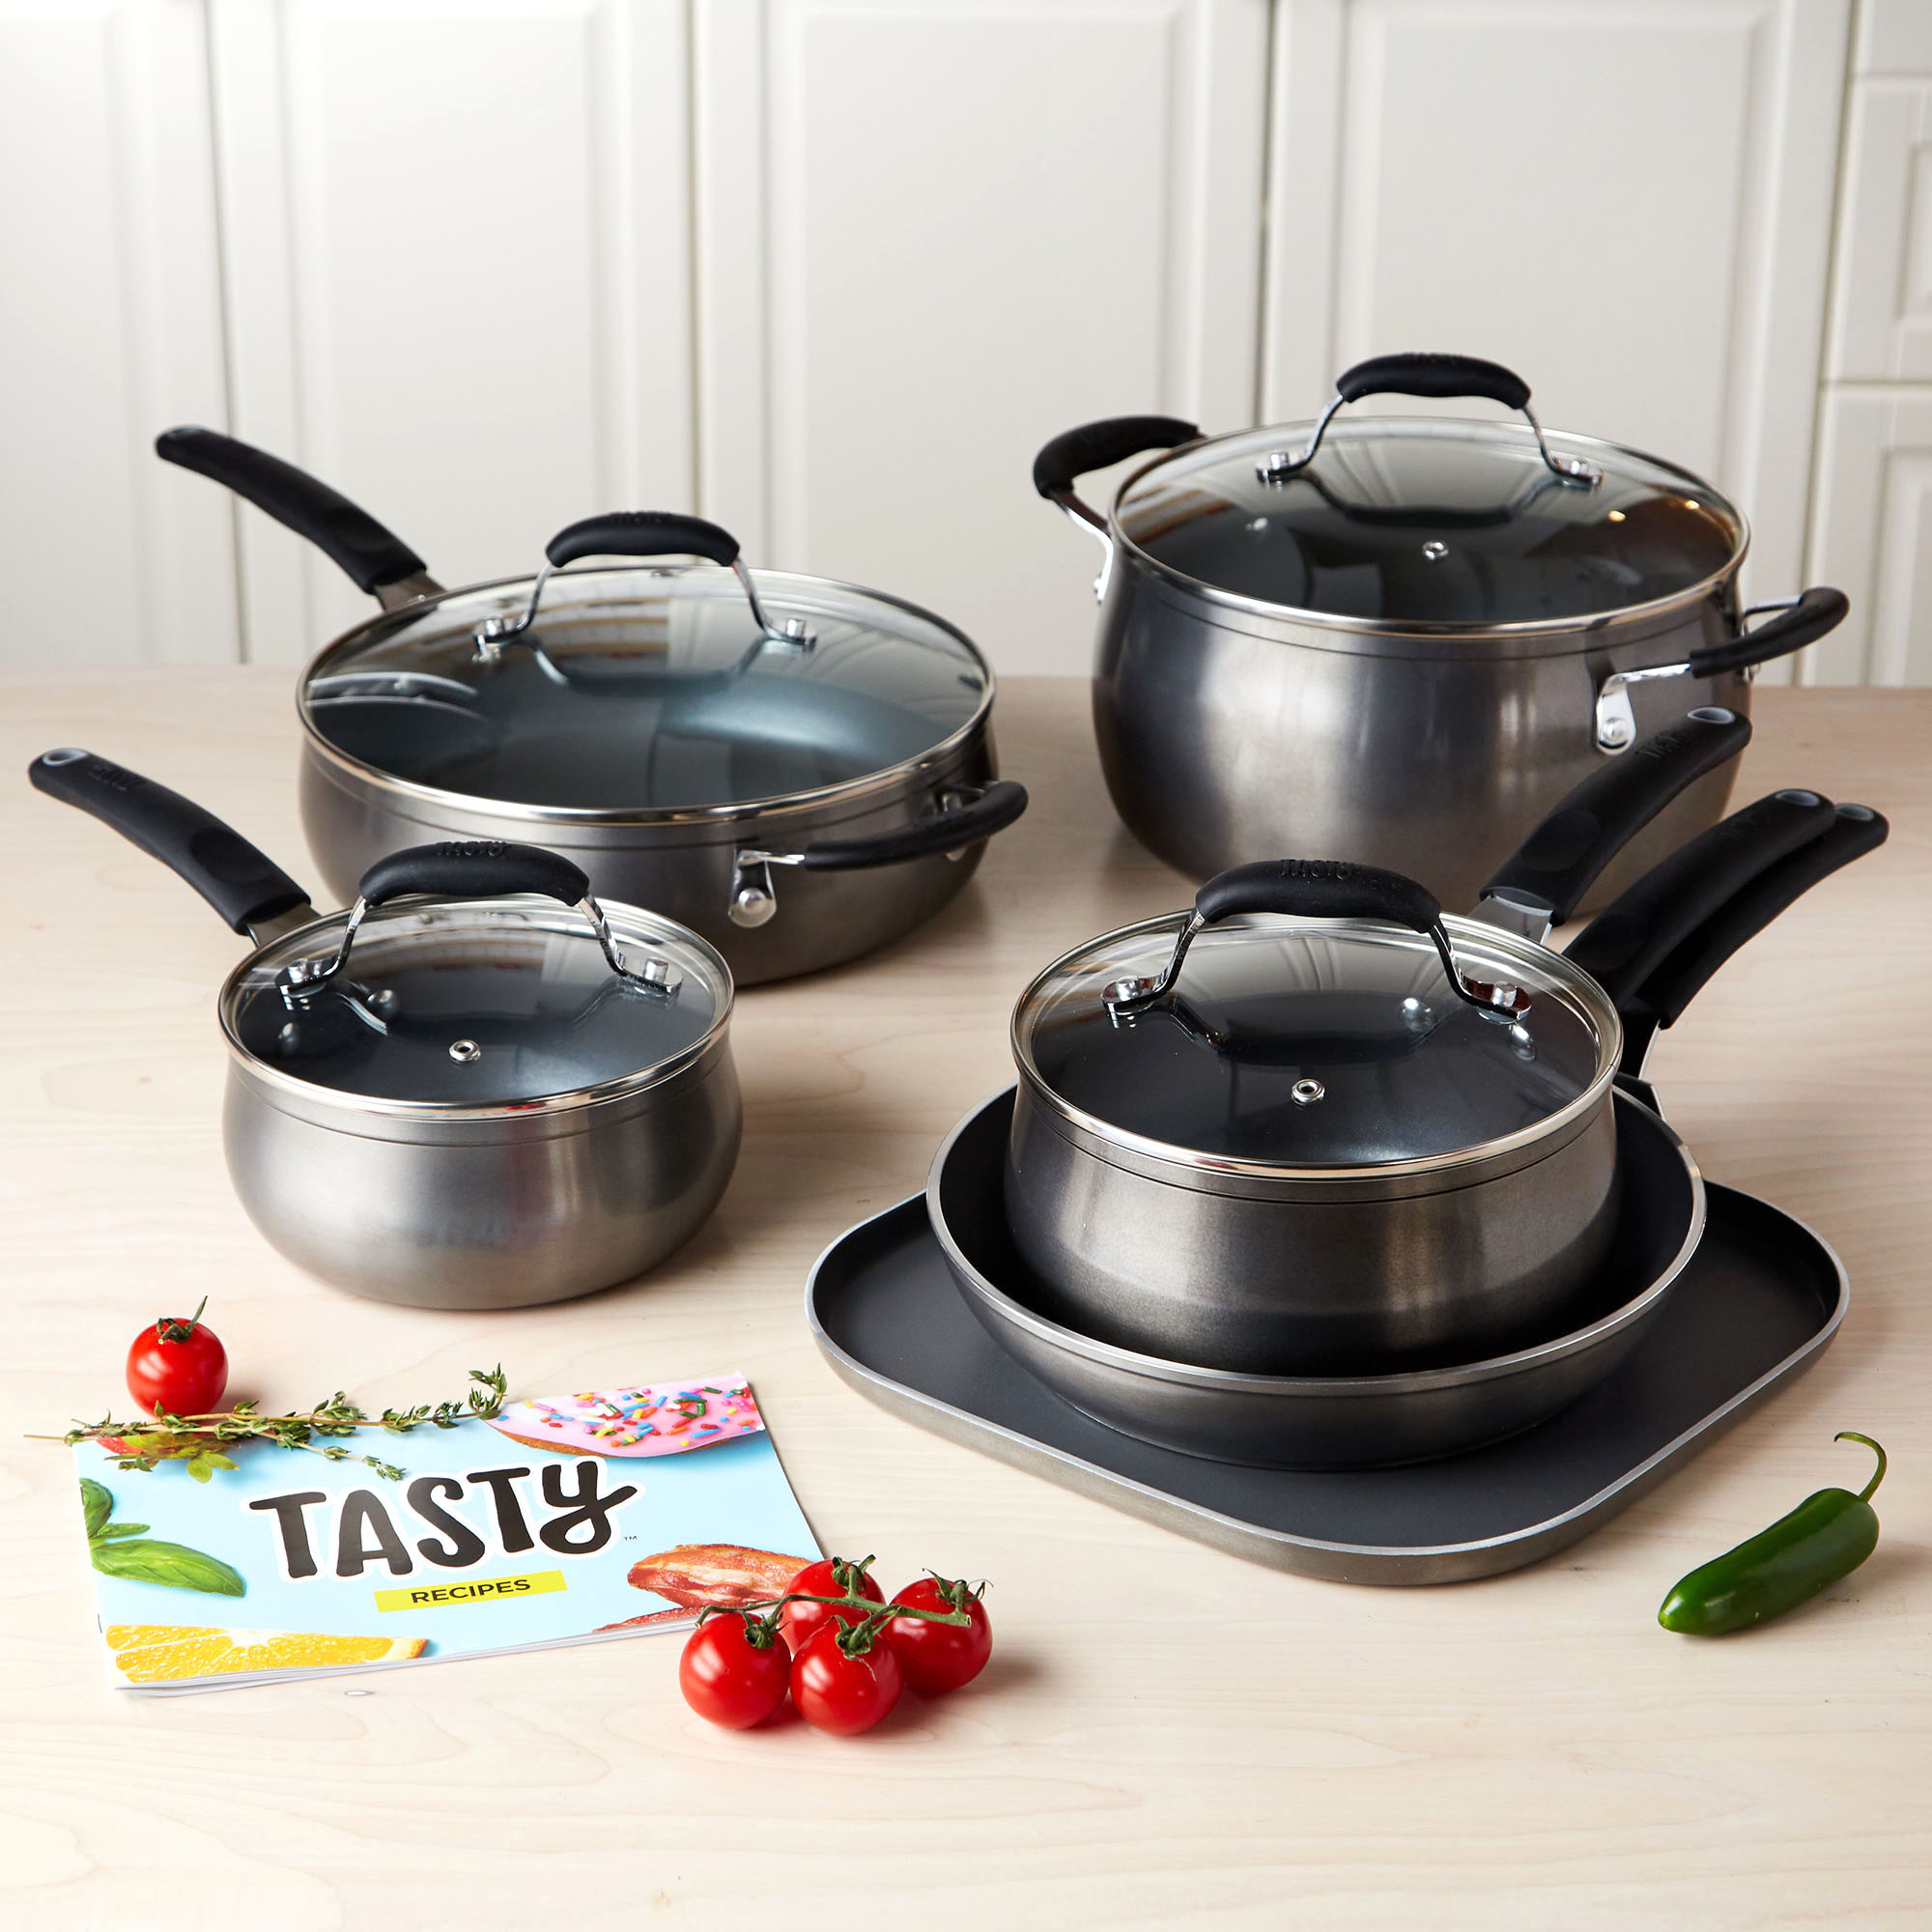 Tasty 11pc Cookware Set Non Stick   Diamond Reinforced   Pfoa Free, Gunmetal by Tasty